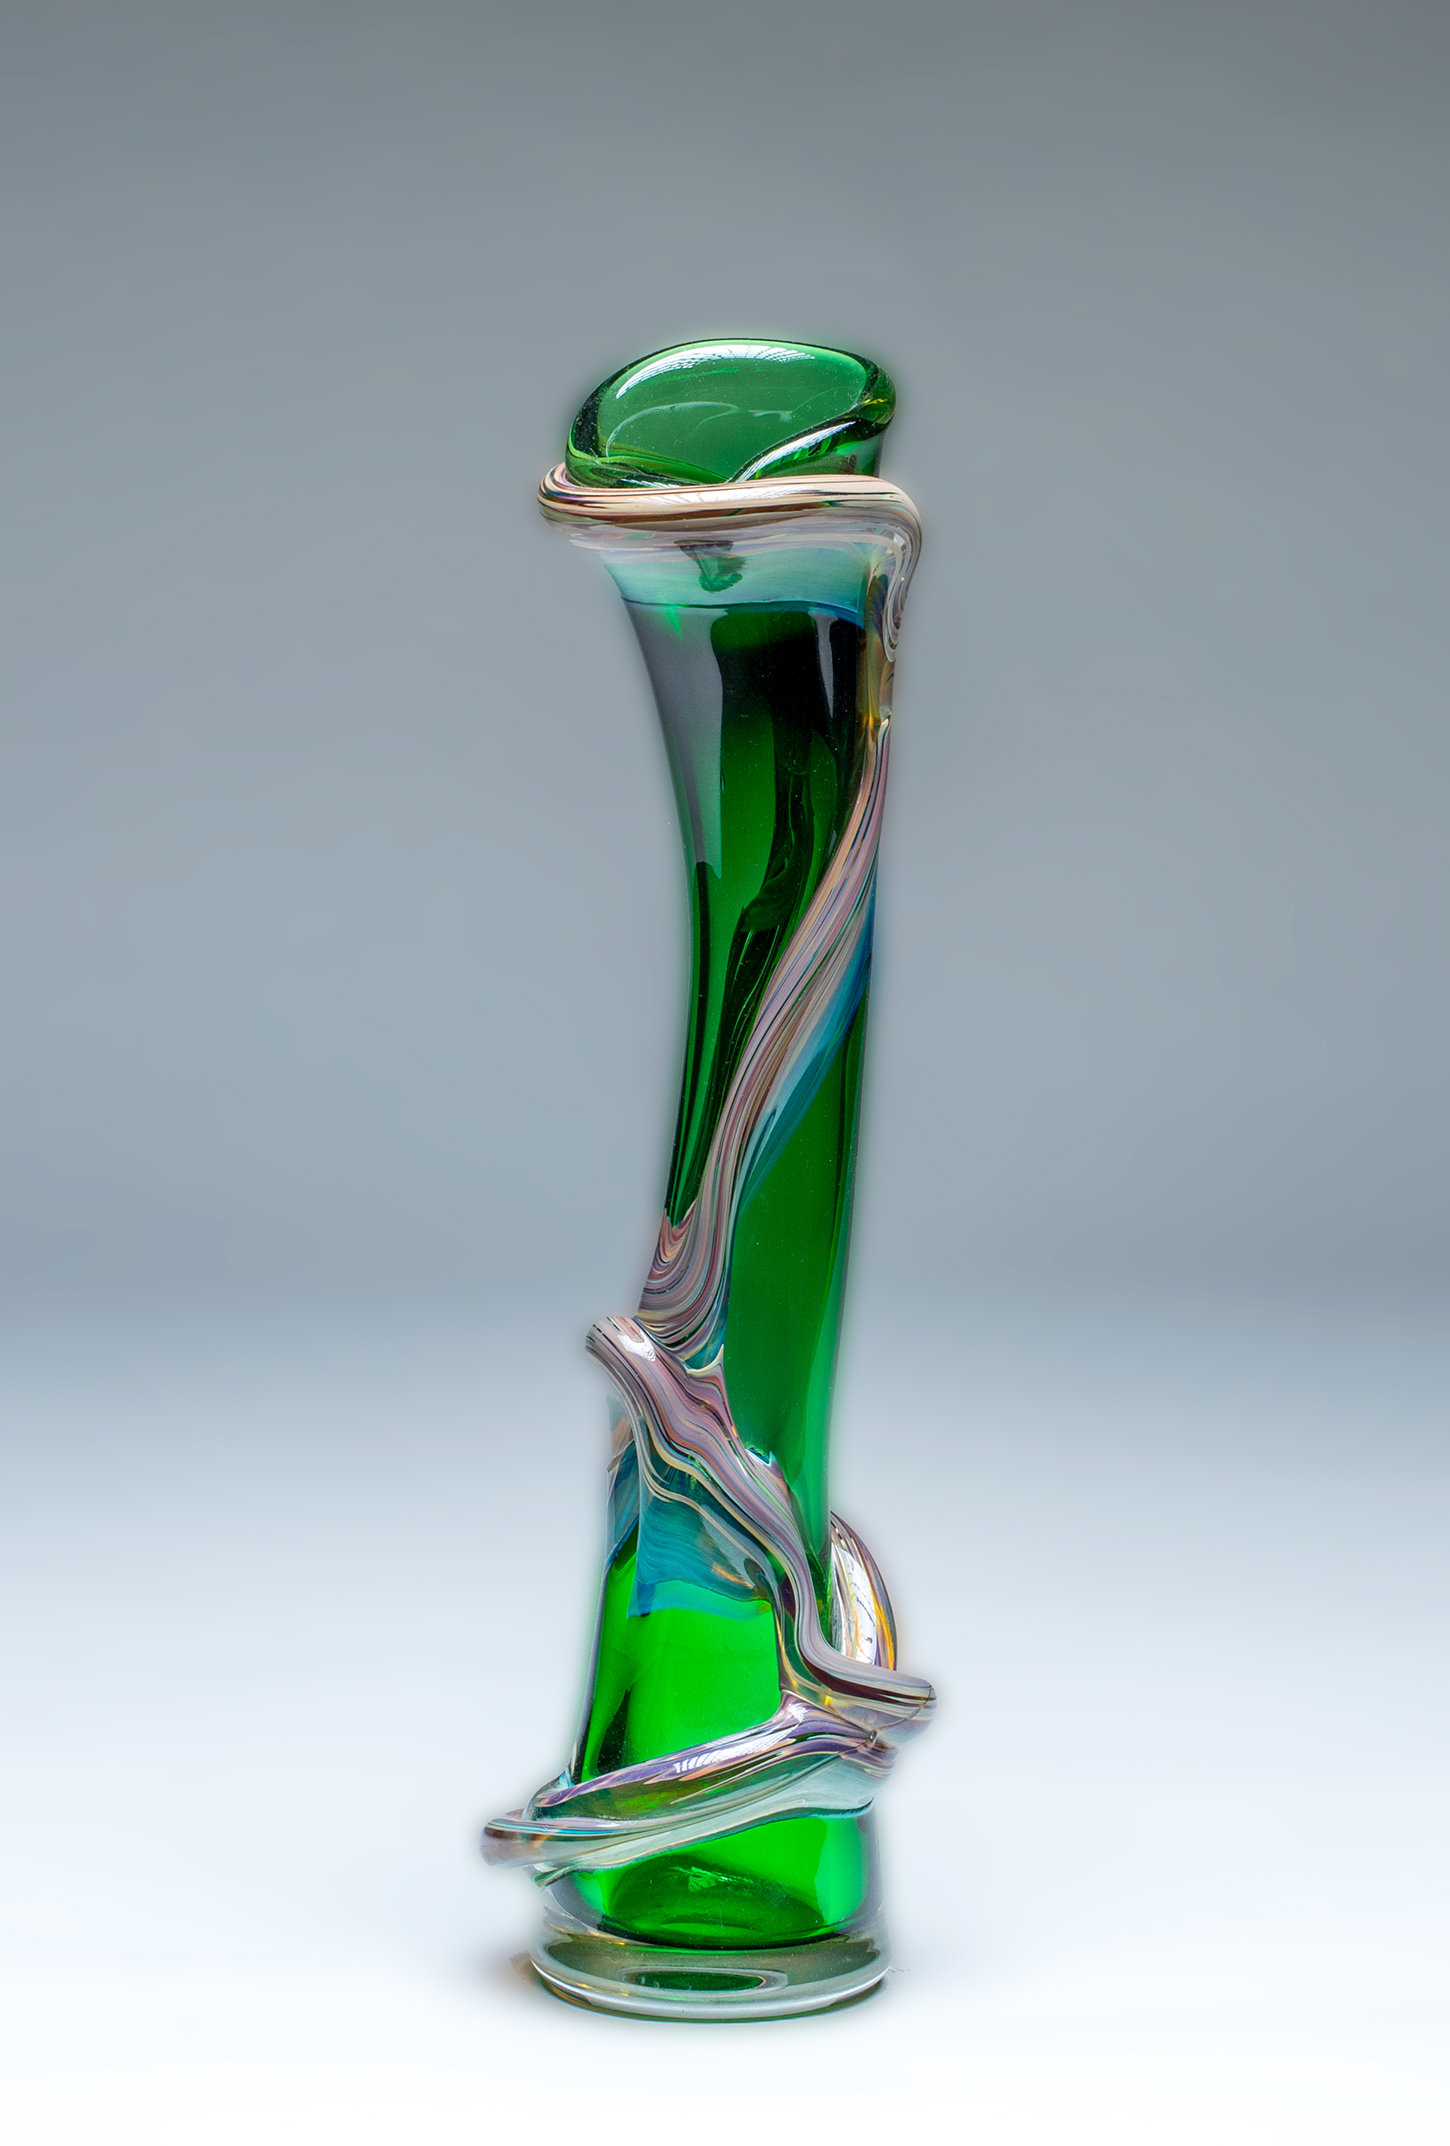 Ivy Vine Vase In Pine Green By Chris Mosey Art Glass Vase